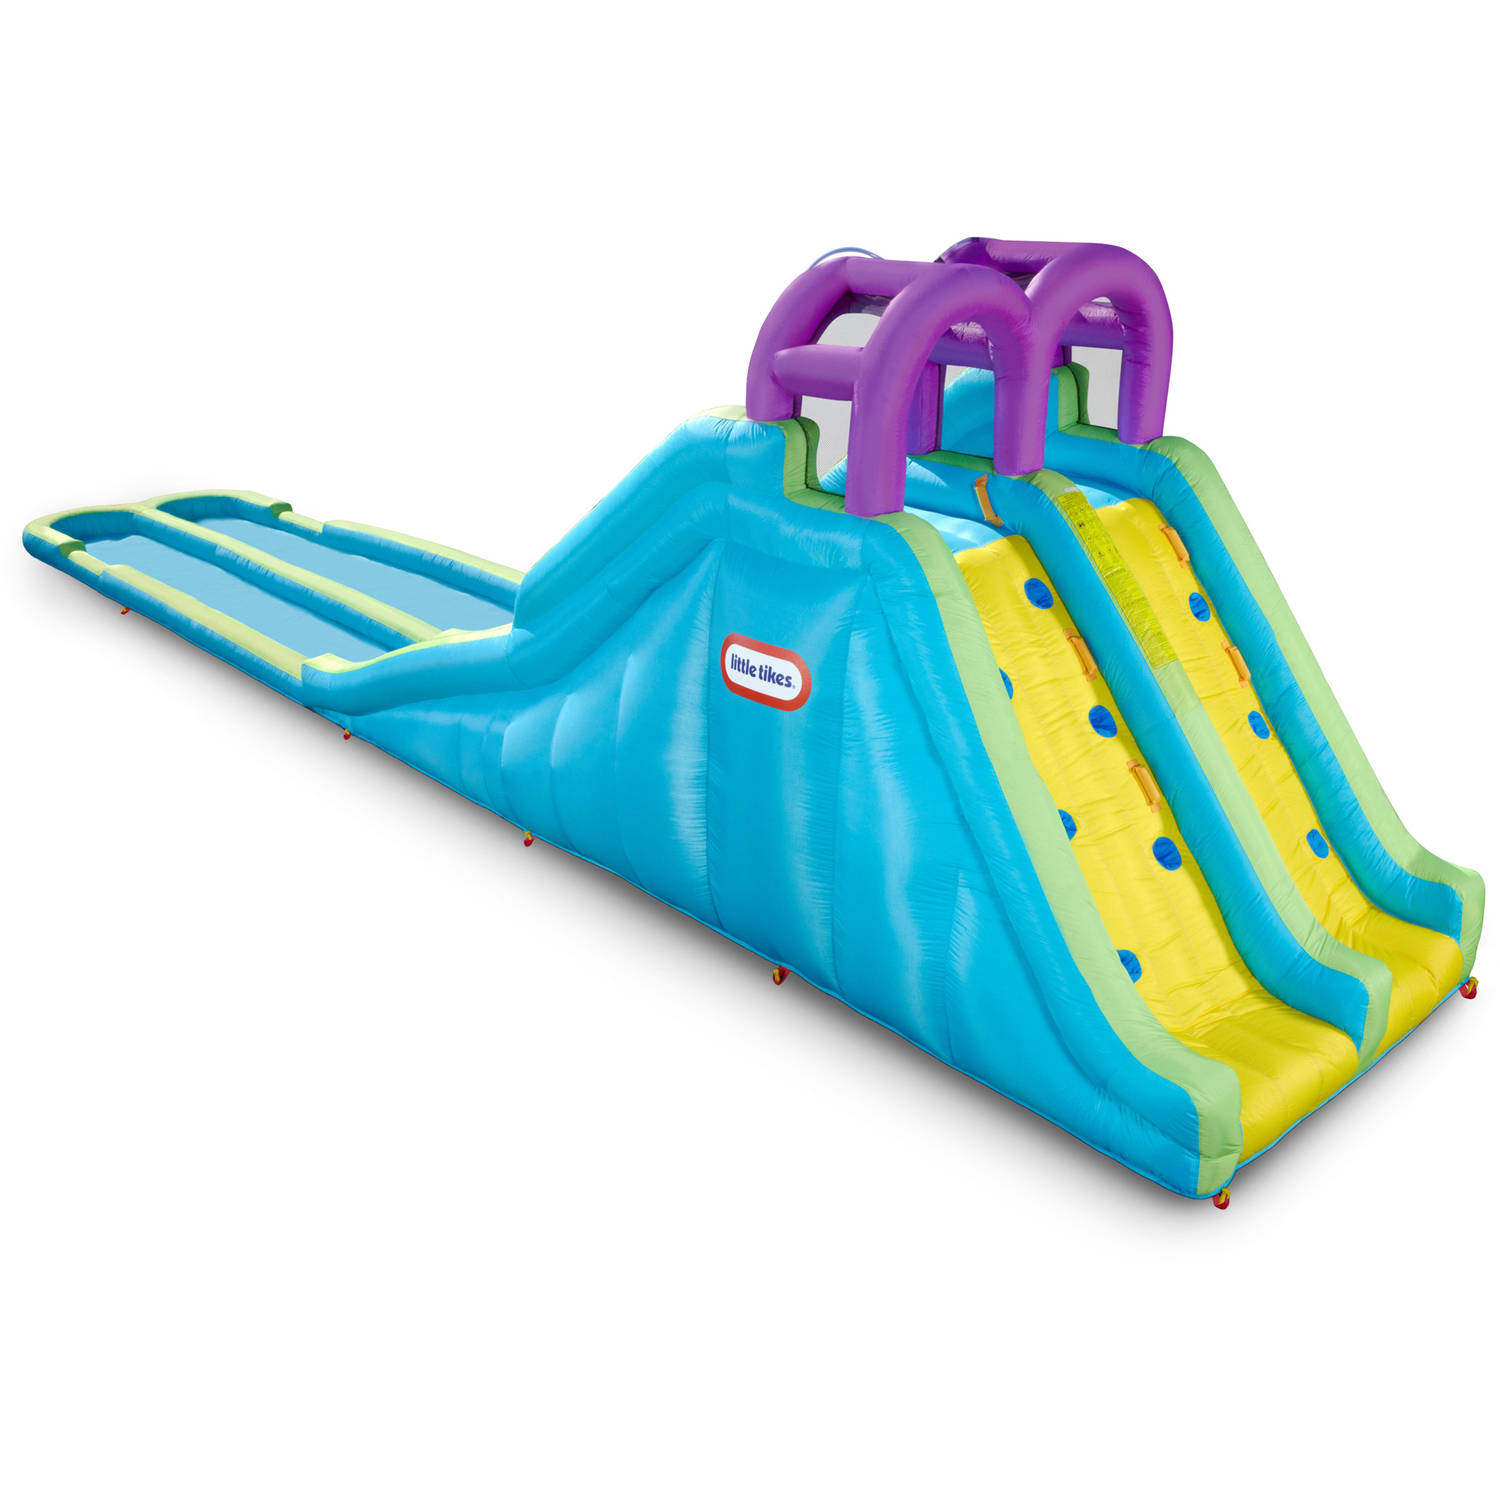 Little Tikes Racing Slides Waterslide